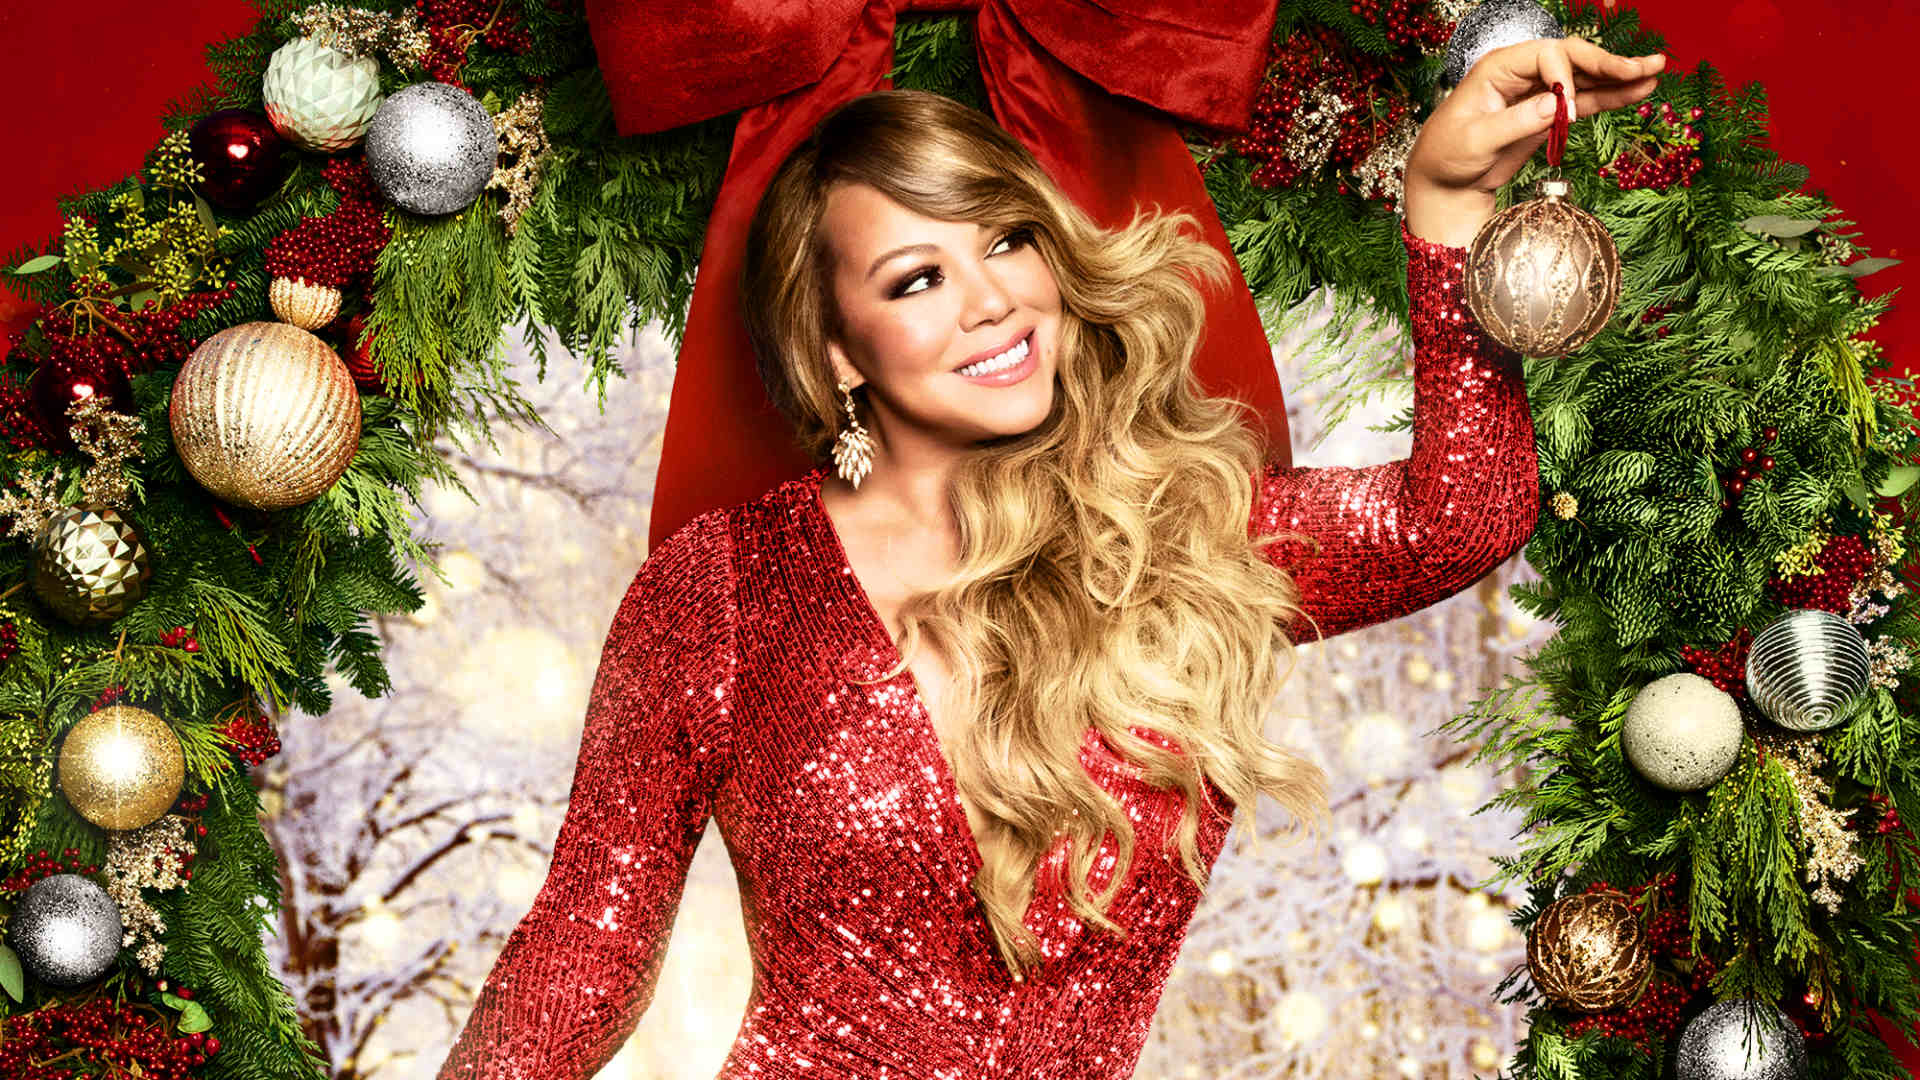 Mariah Carey's Magical Christmas Special Trailer: Join the Virtual Watch Party Tonight